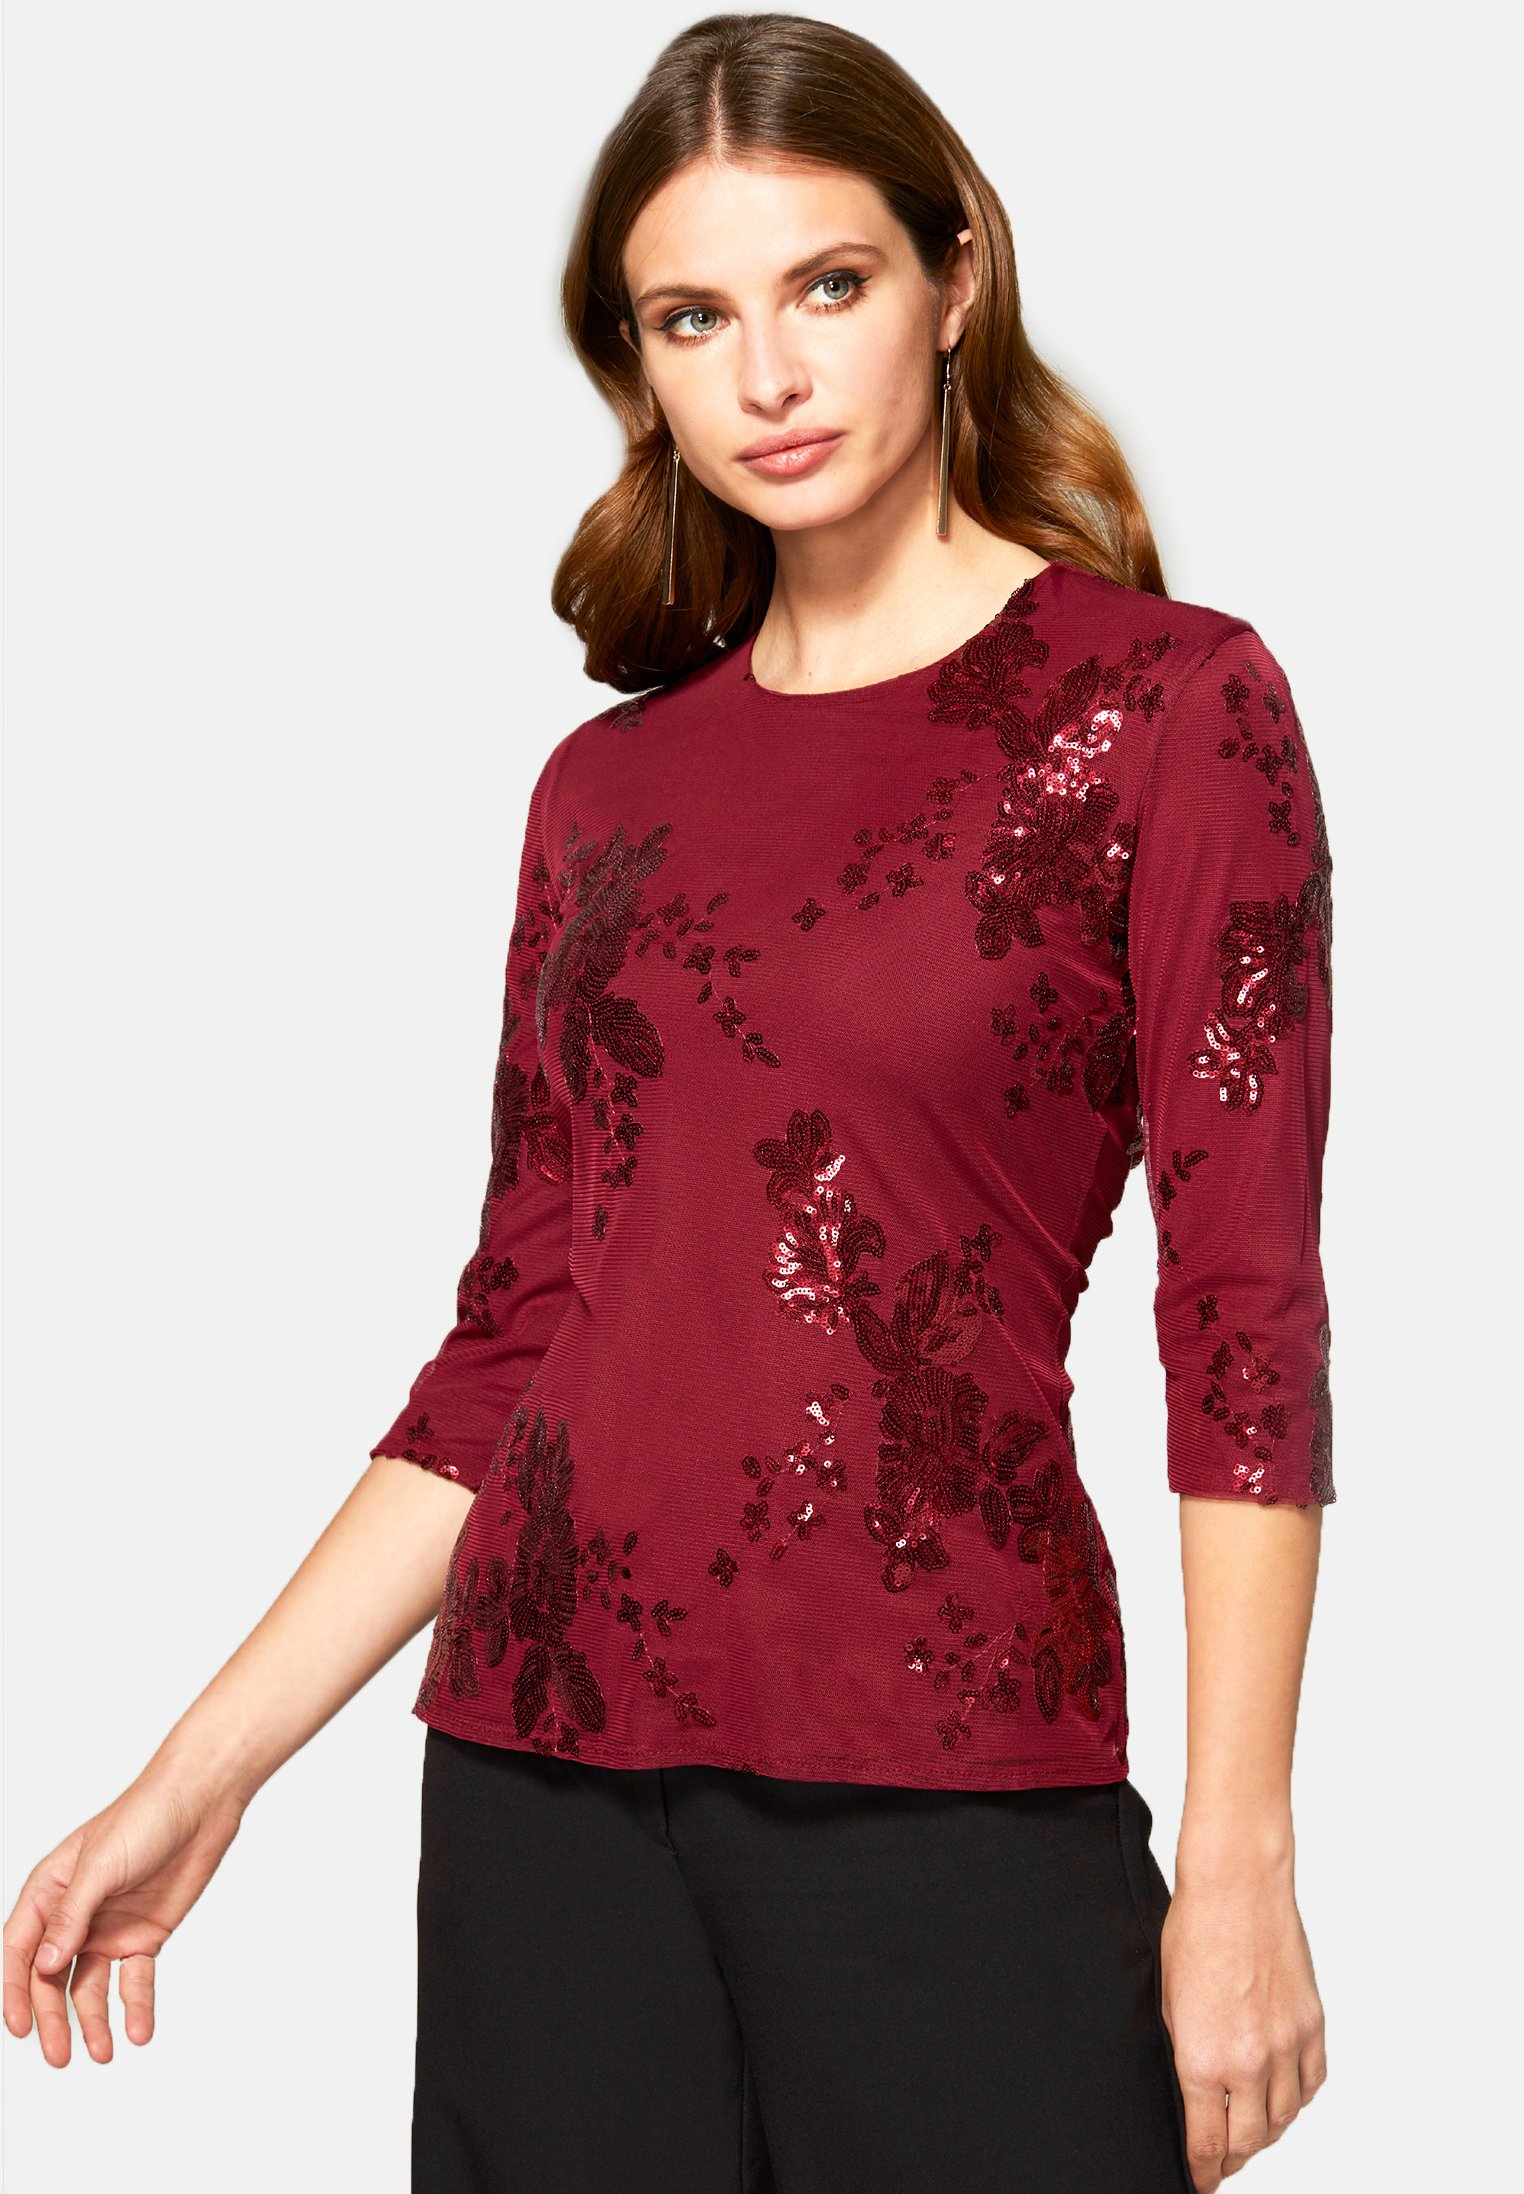 Fast Express Women's Clothing HotSquash SEQUIN PARTY TOP Top red flowers YbsvvjFJH